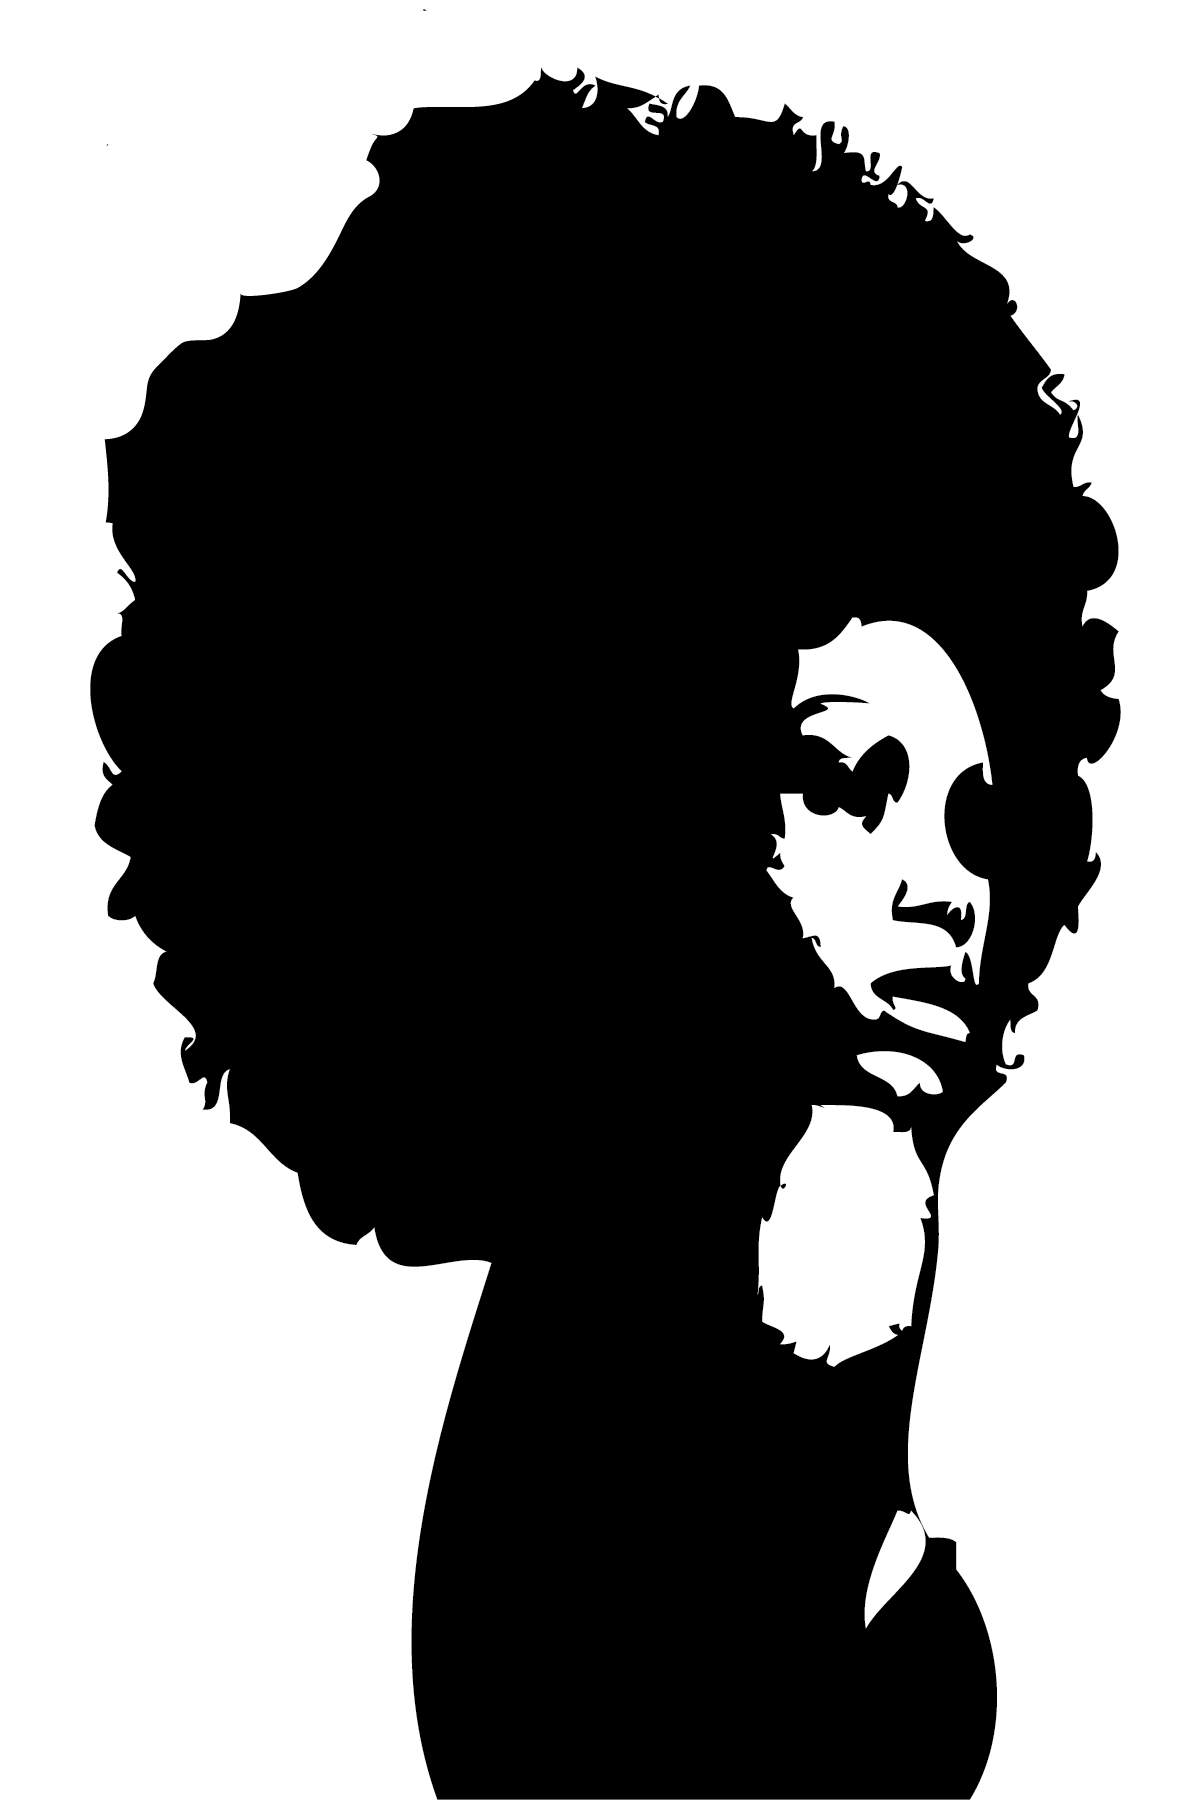 1186x1804 Black Woman Silhouette Clip Art